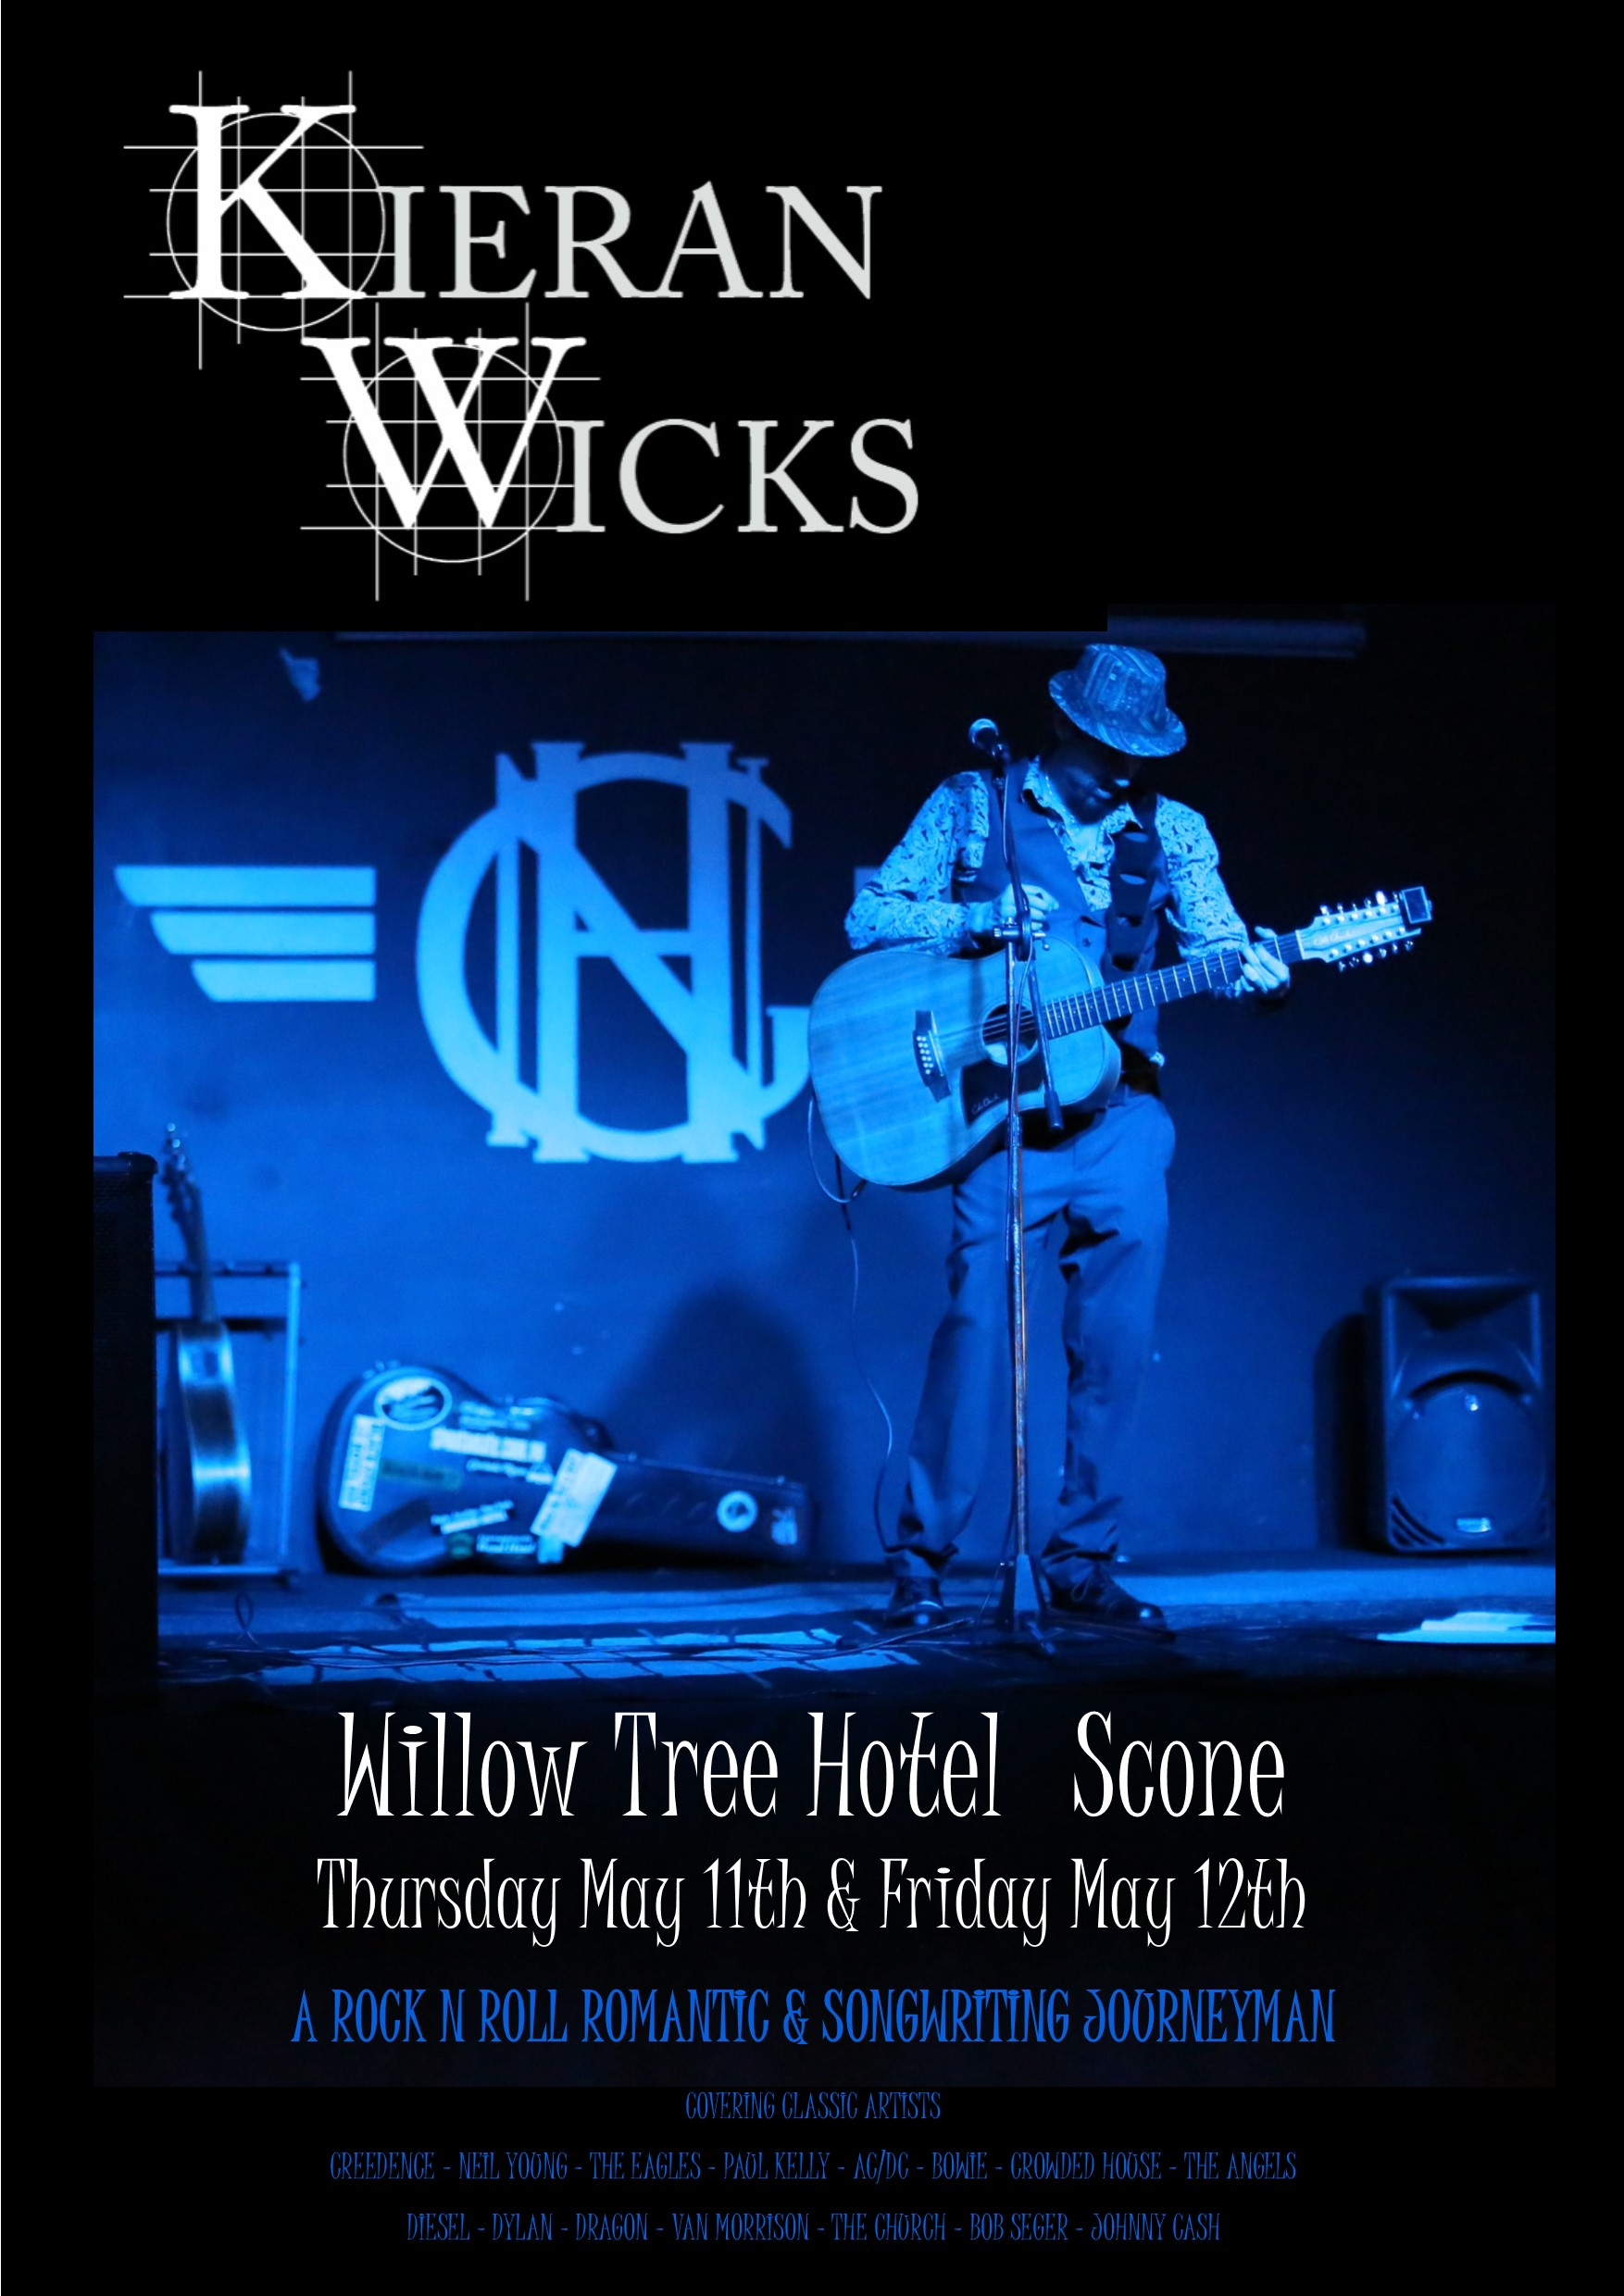 Scone Horse Festival - Live at the Willow Tree Hotel, Scone Upper Hunter NSW